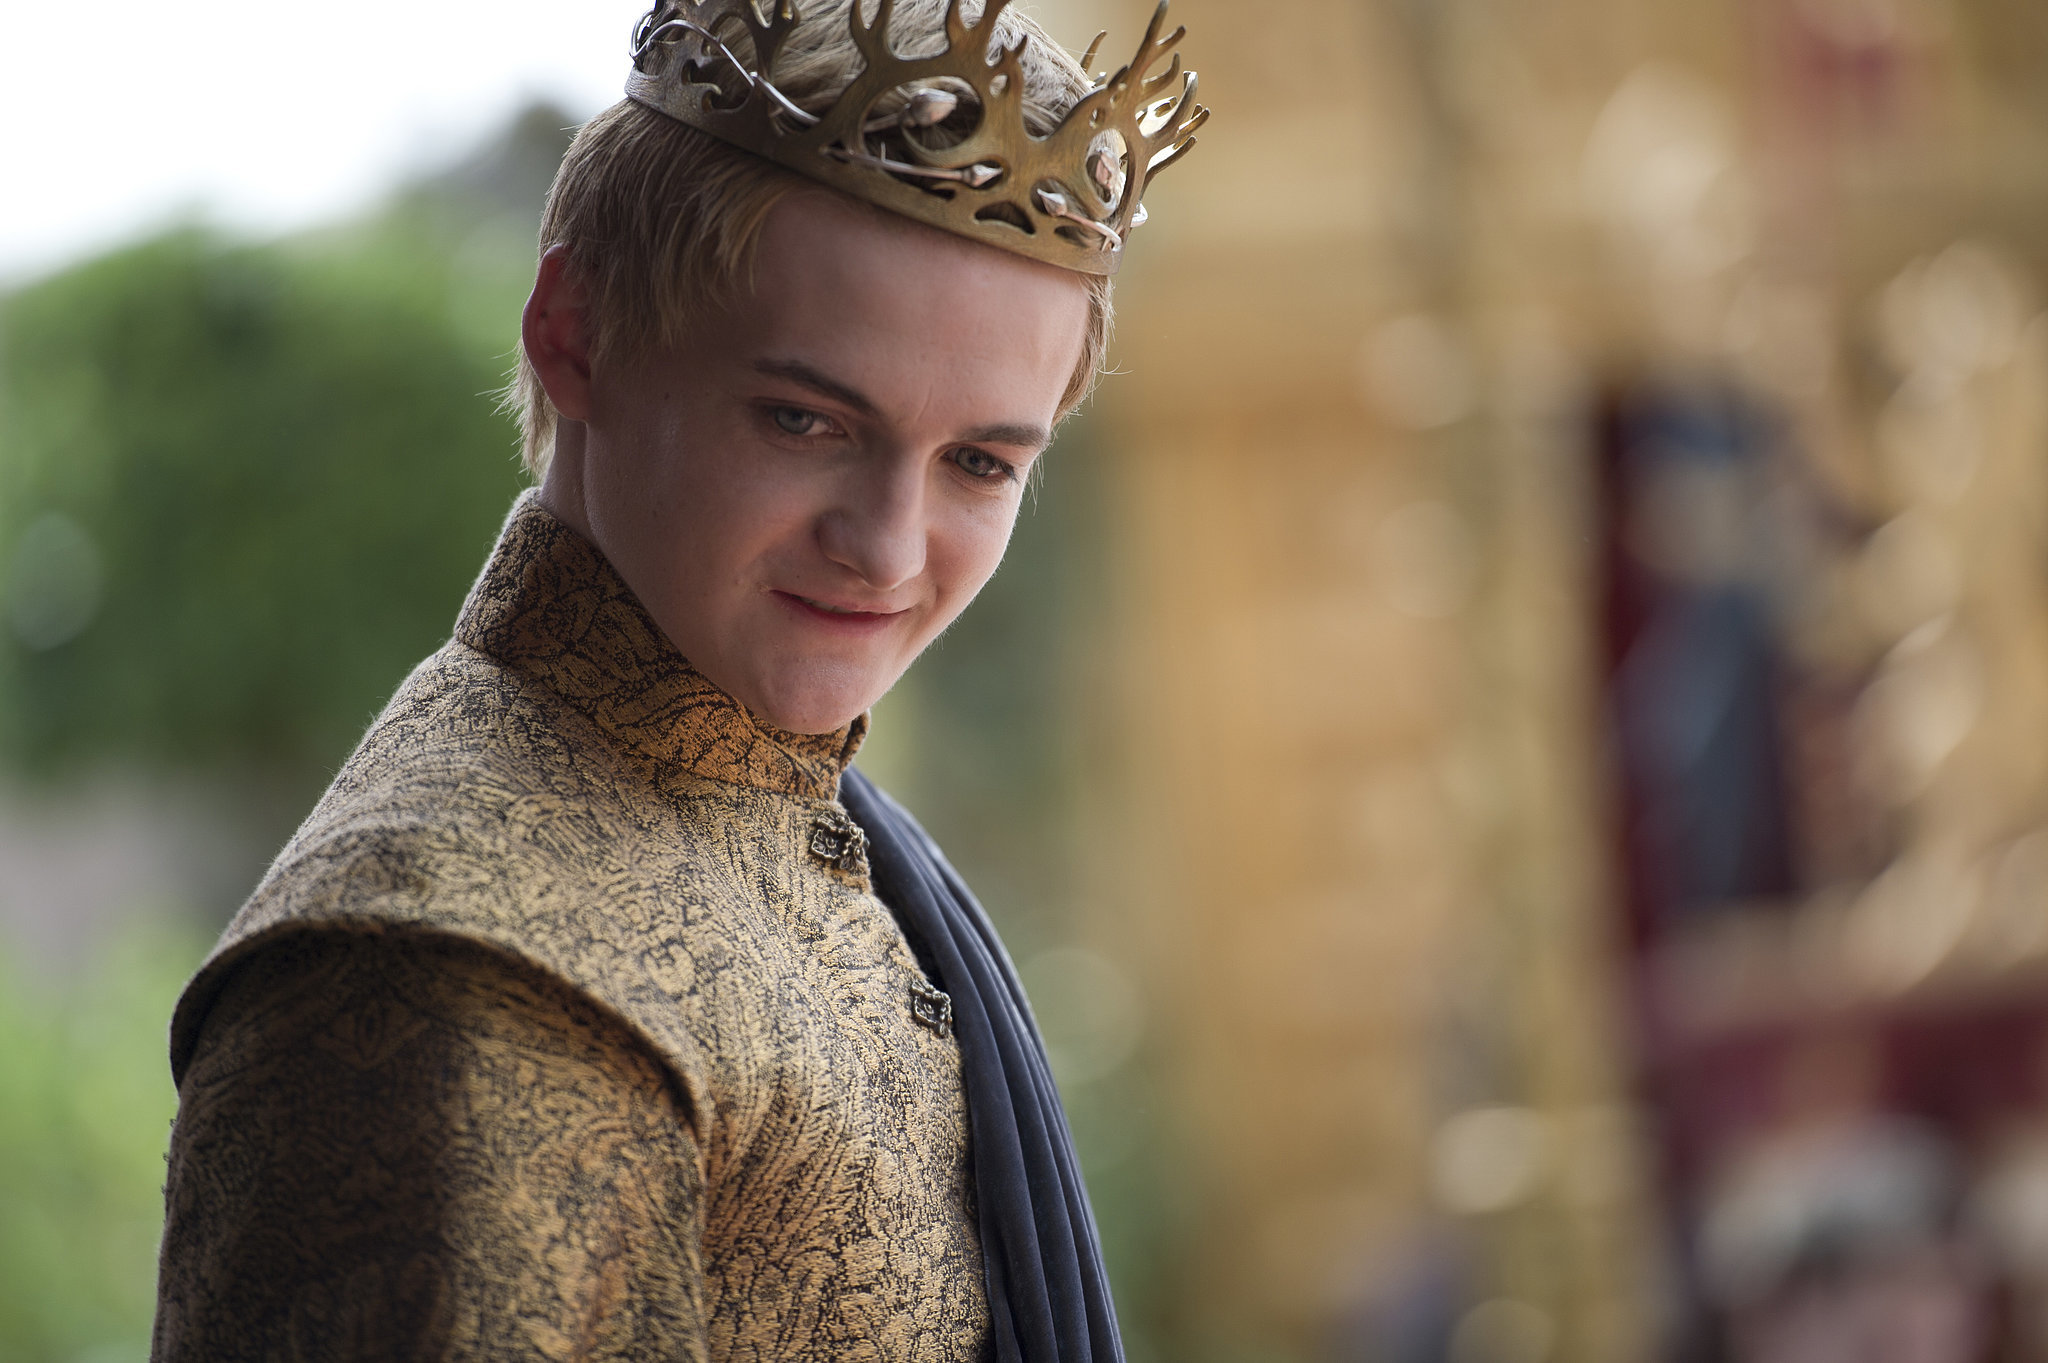 Joffrey, a villain in Game of Thrones, learned the hard way that management and leadership are no picnic